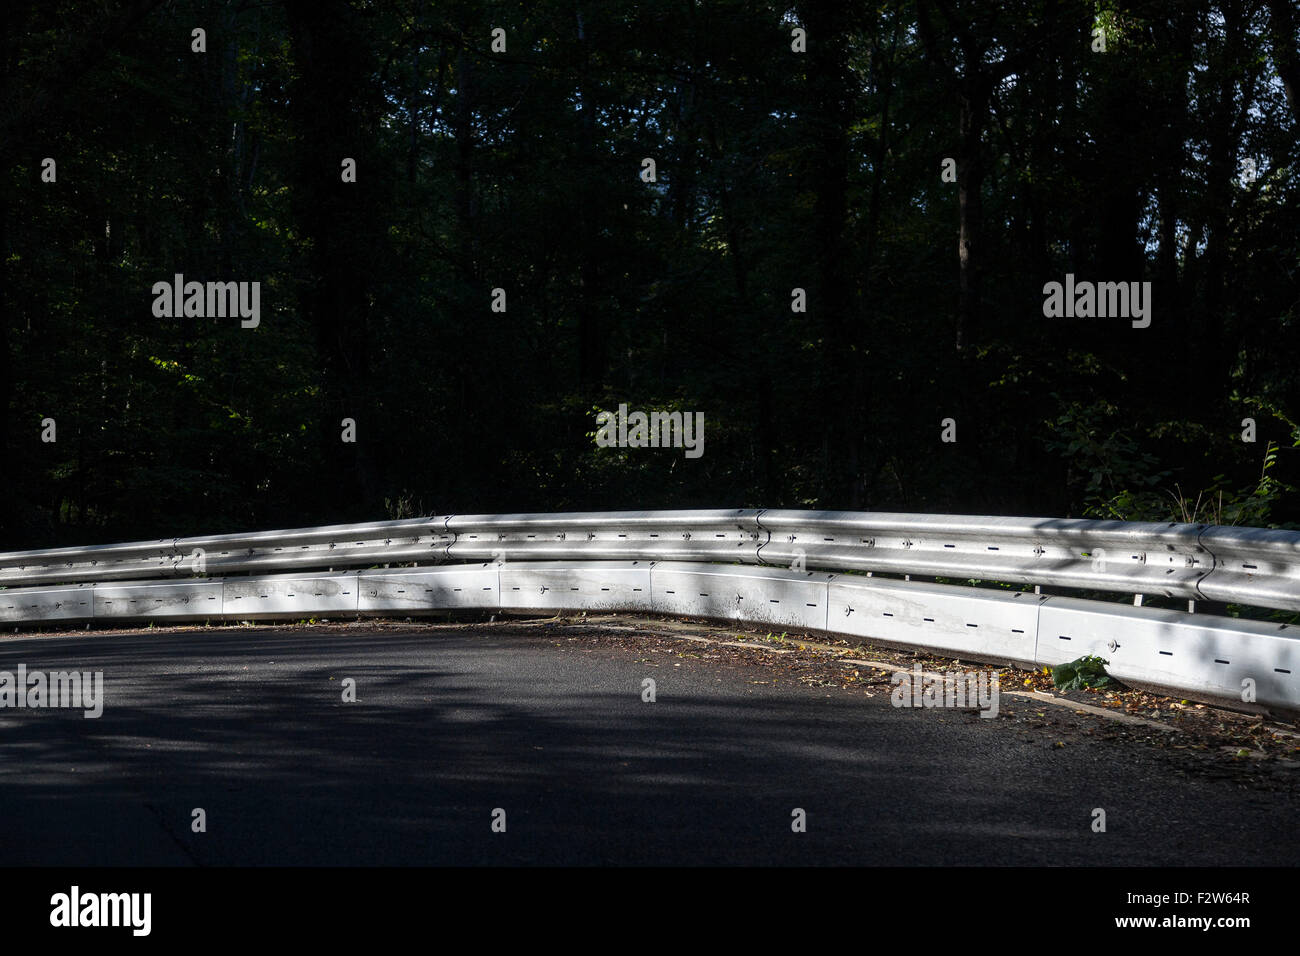 LIGHTWEIGHT, EASY TO ASSEMBLE, CRASHWORTHY ALTERNATIVE TO PORTABLE CONCRETE BARRIER on the the B193 road in the - Stock Image